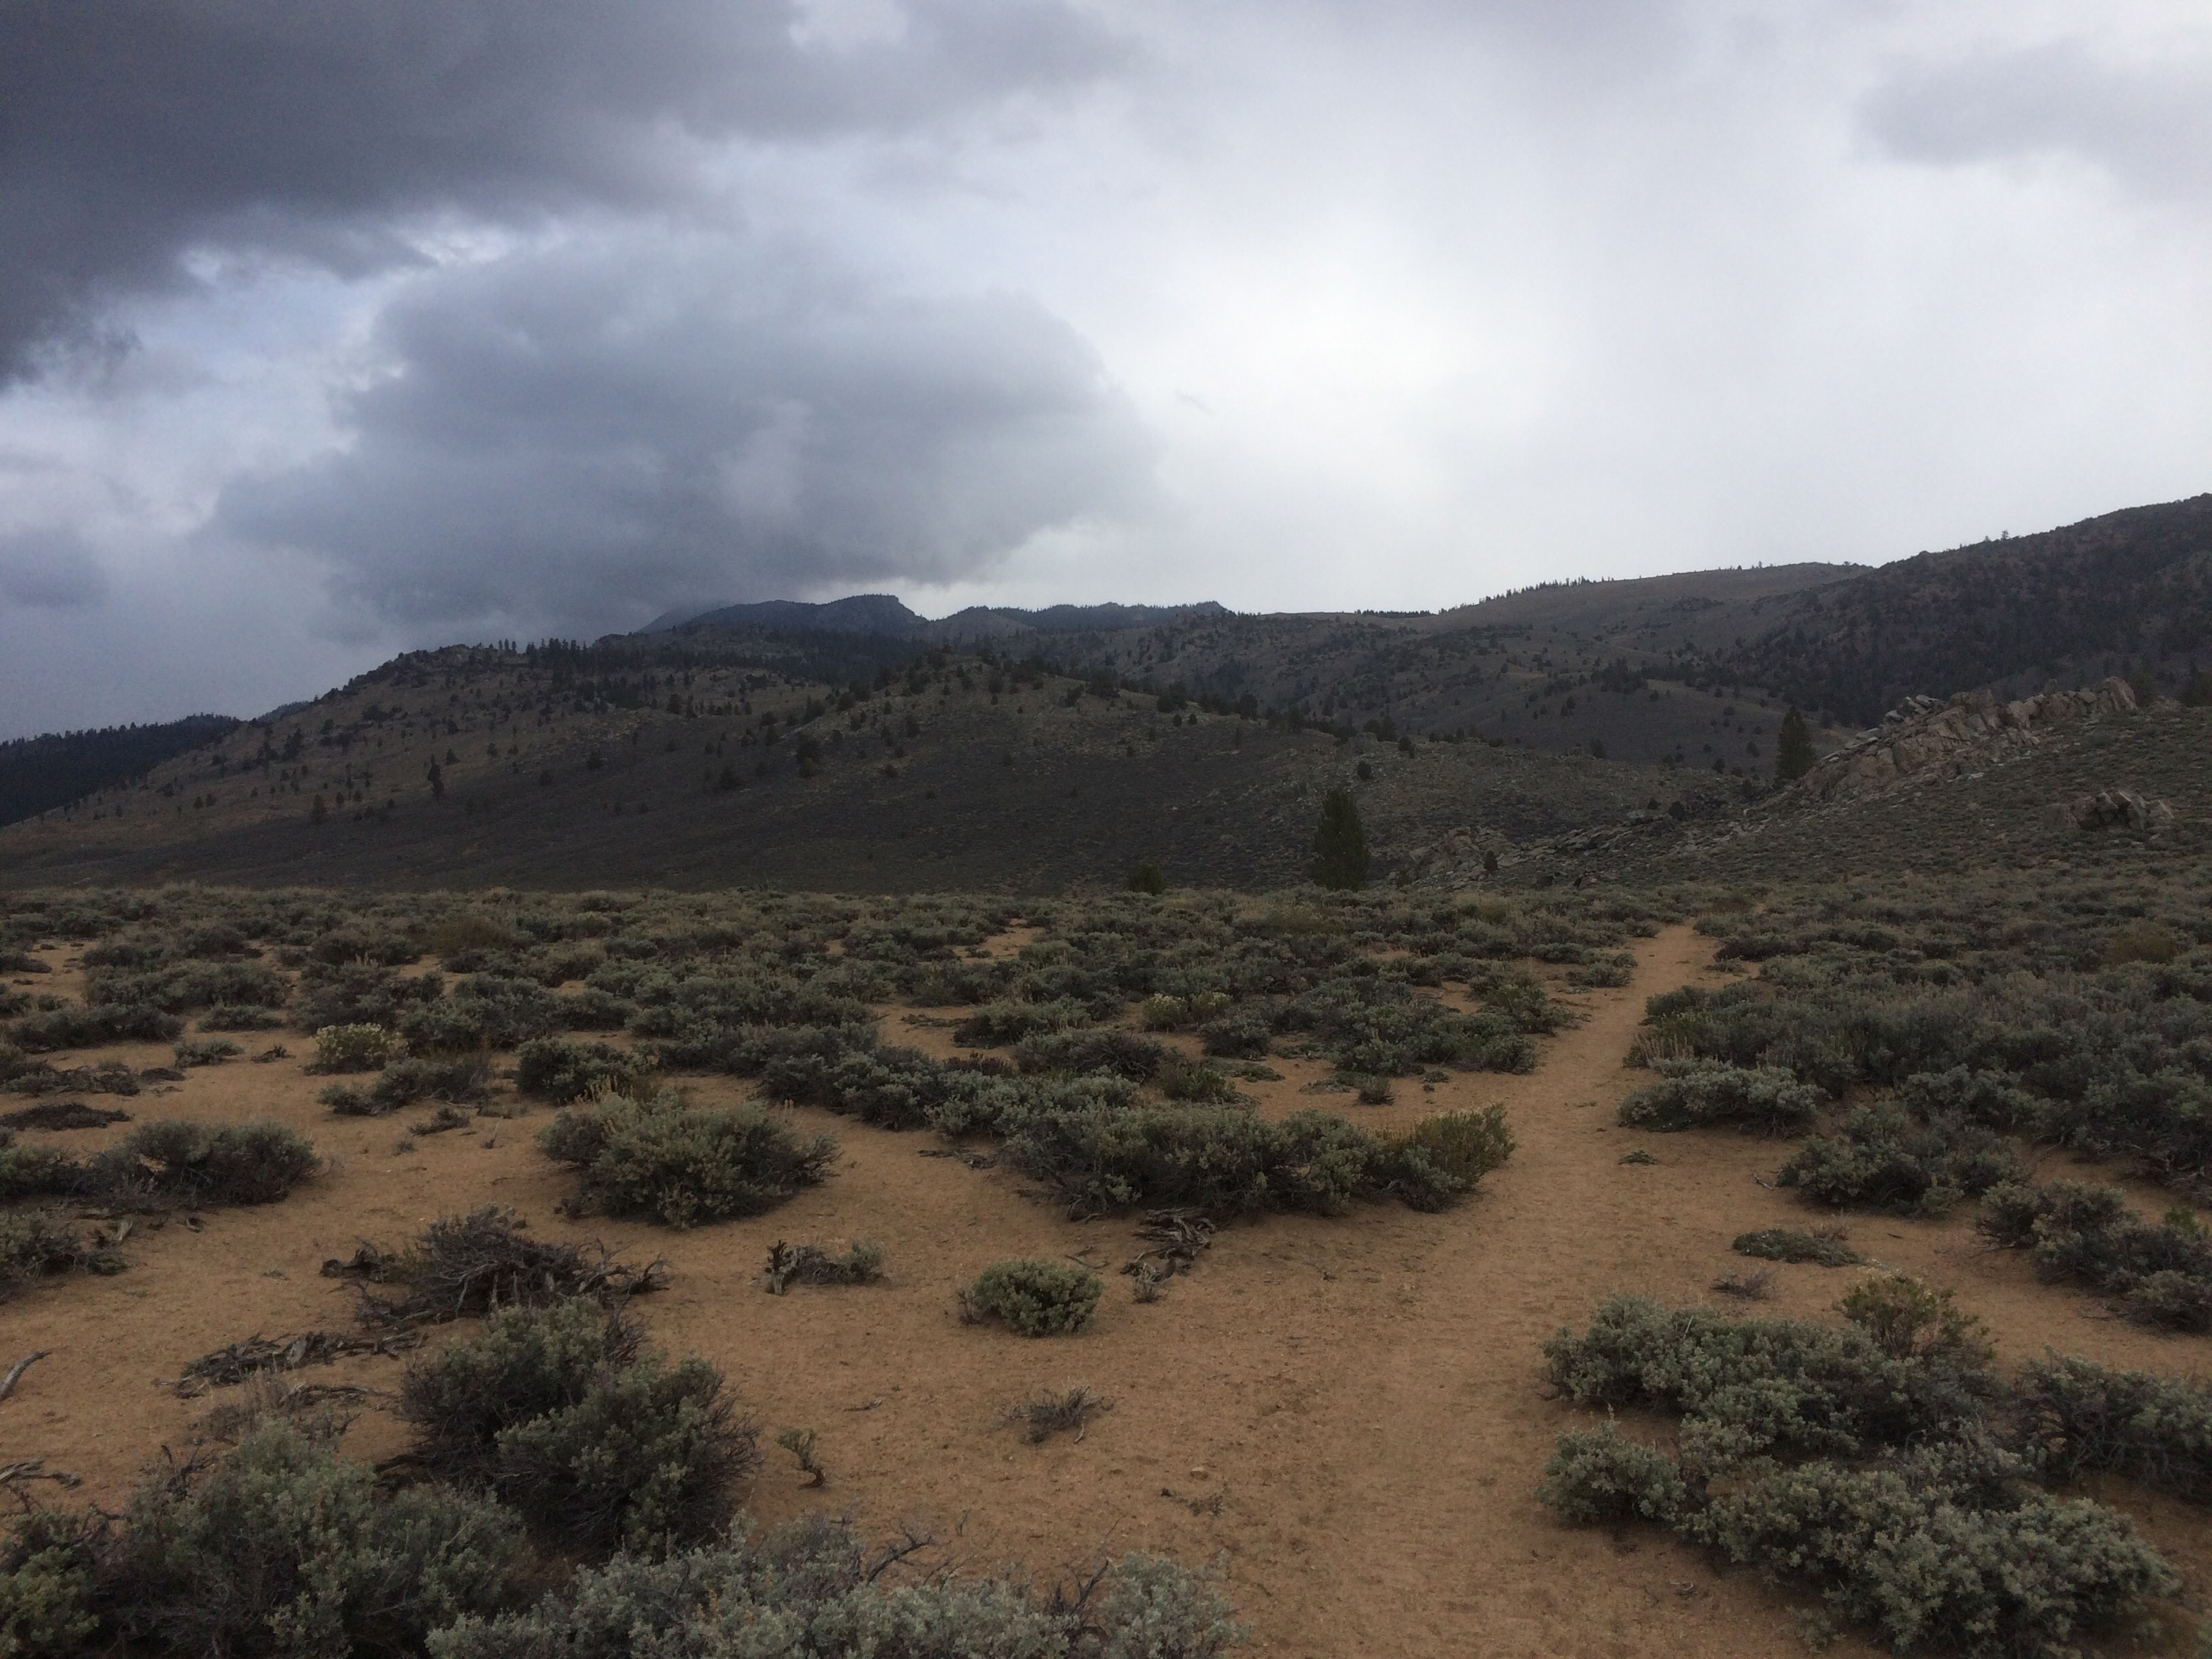 Hiking into the dark clouds.